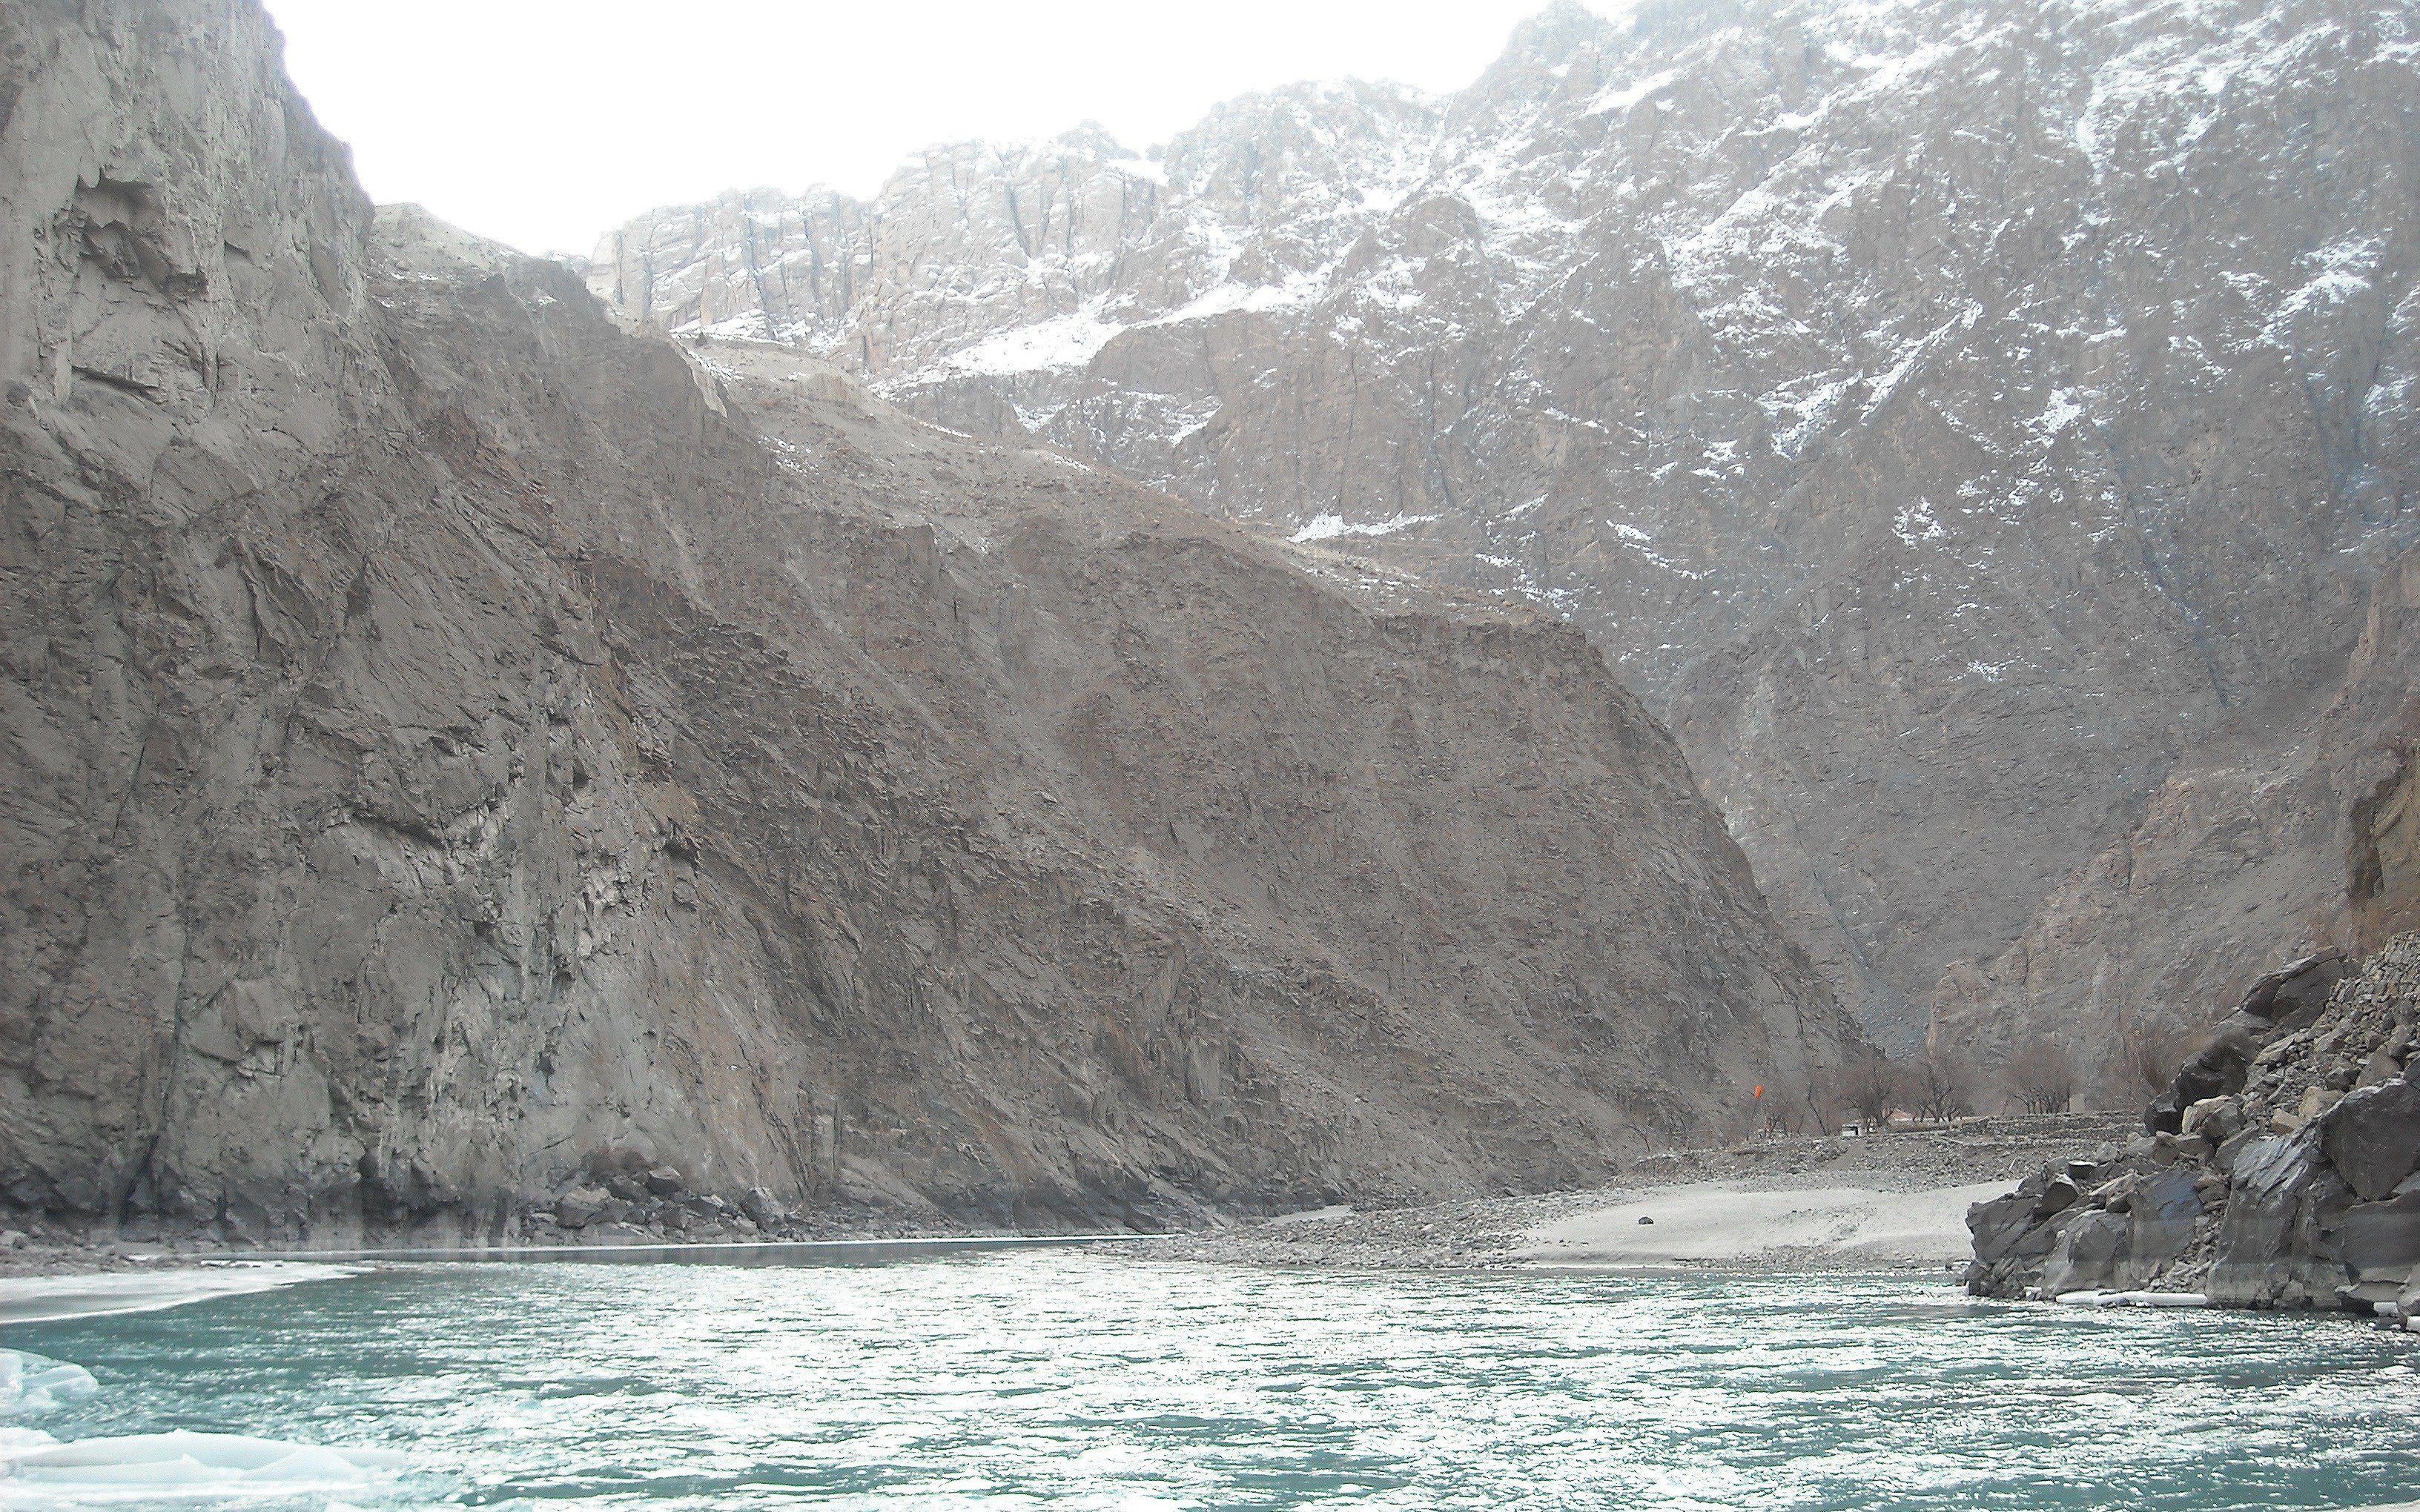 Indus in making its way through formidable Himalayas